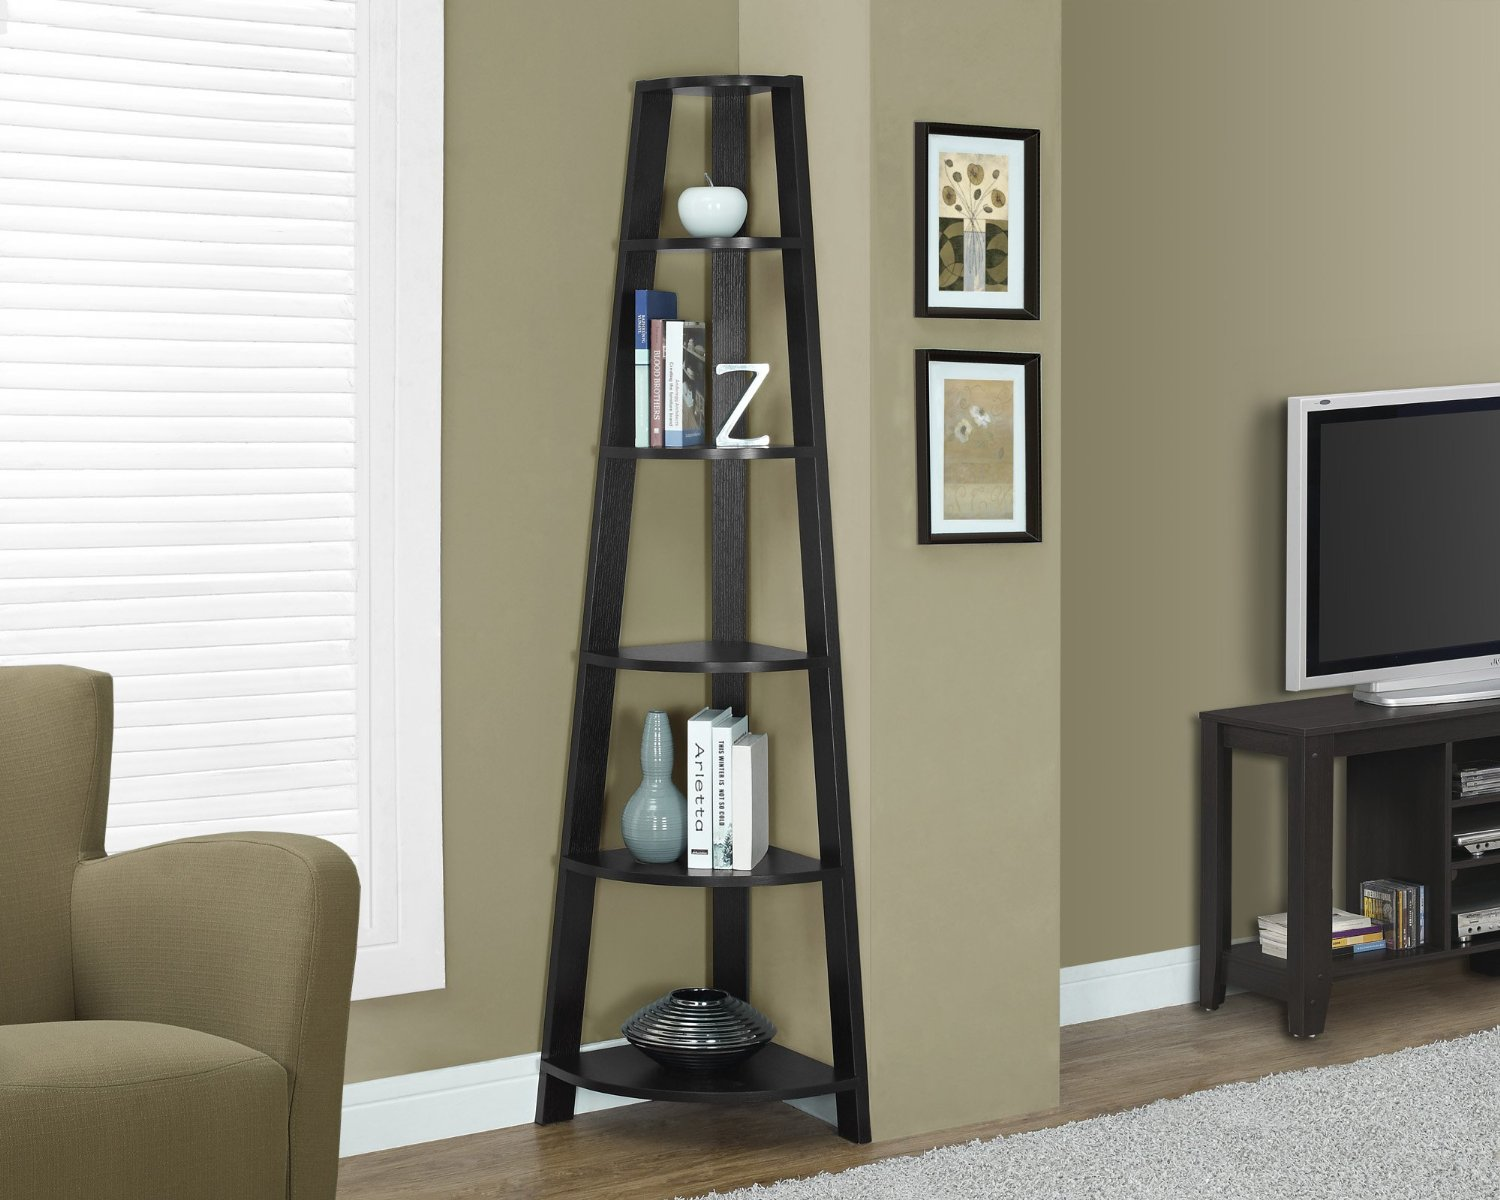 bathroom shower corner shelf the outrageous great oak top amazing ladder shelves for your home office inch cappuccino brown glass above toilet wire orion display unit wall rack